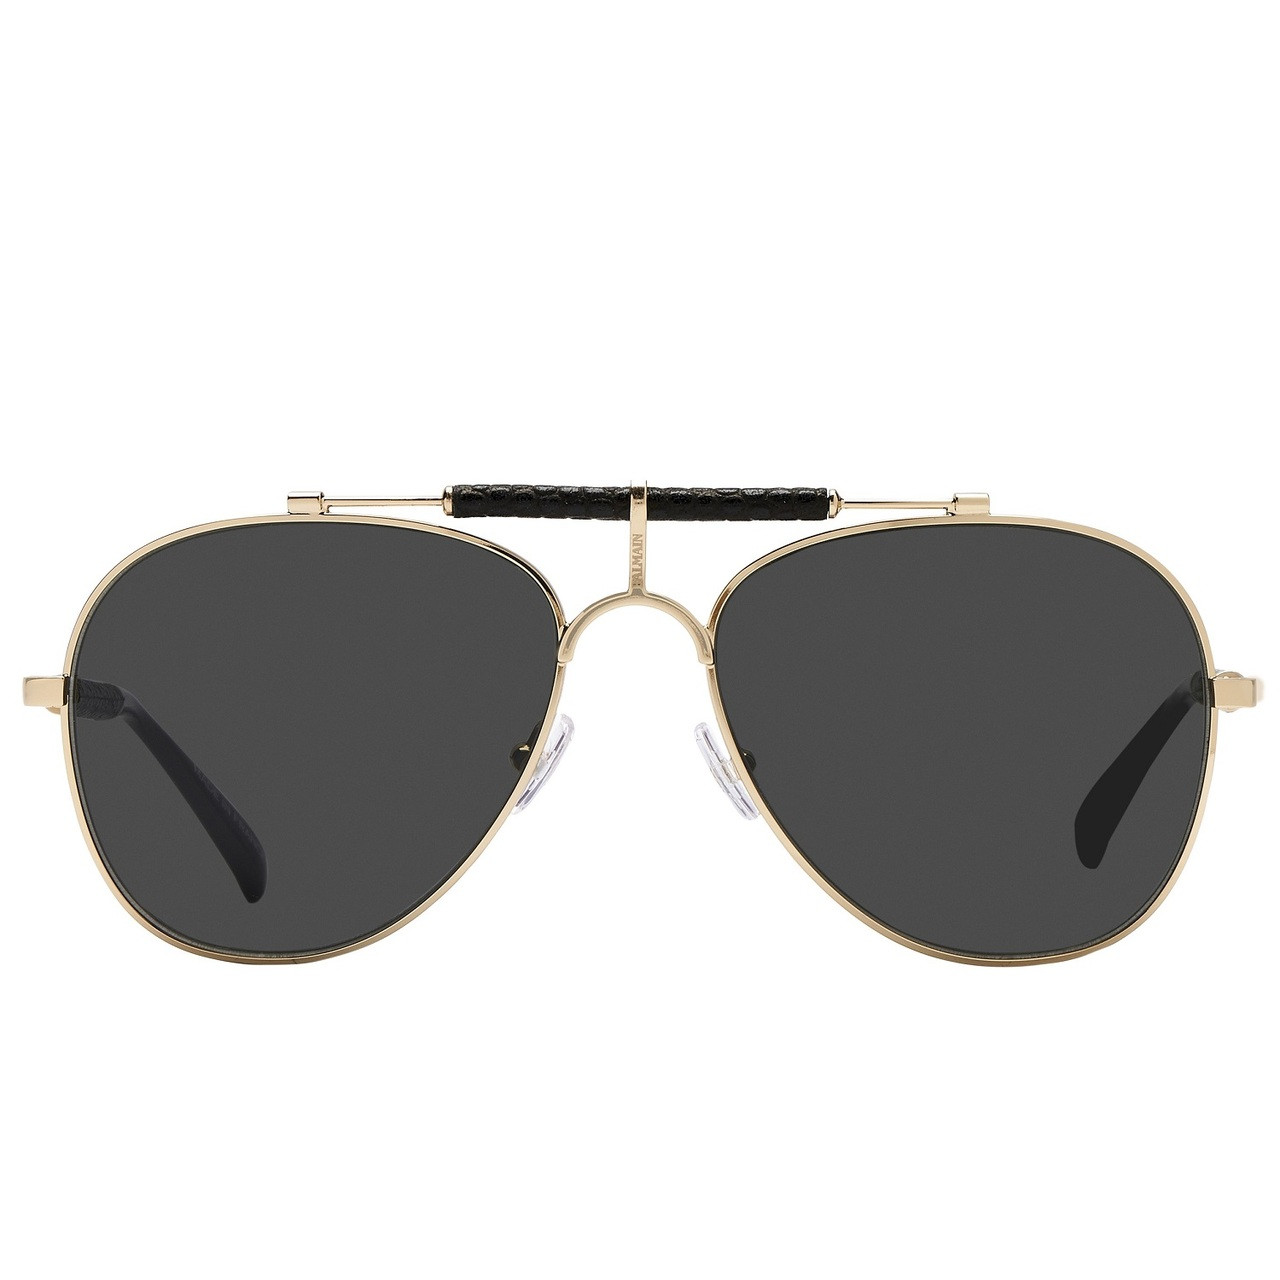 875e8c852119d5 Balmain Limited Edition STUDIO Brow Bar Aviator Sunglasses. Price: $500.00.  Image 1